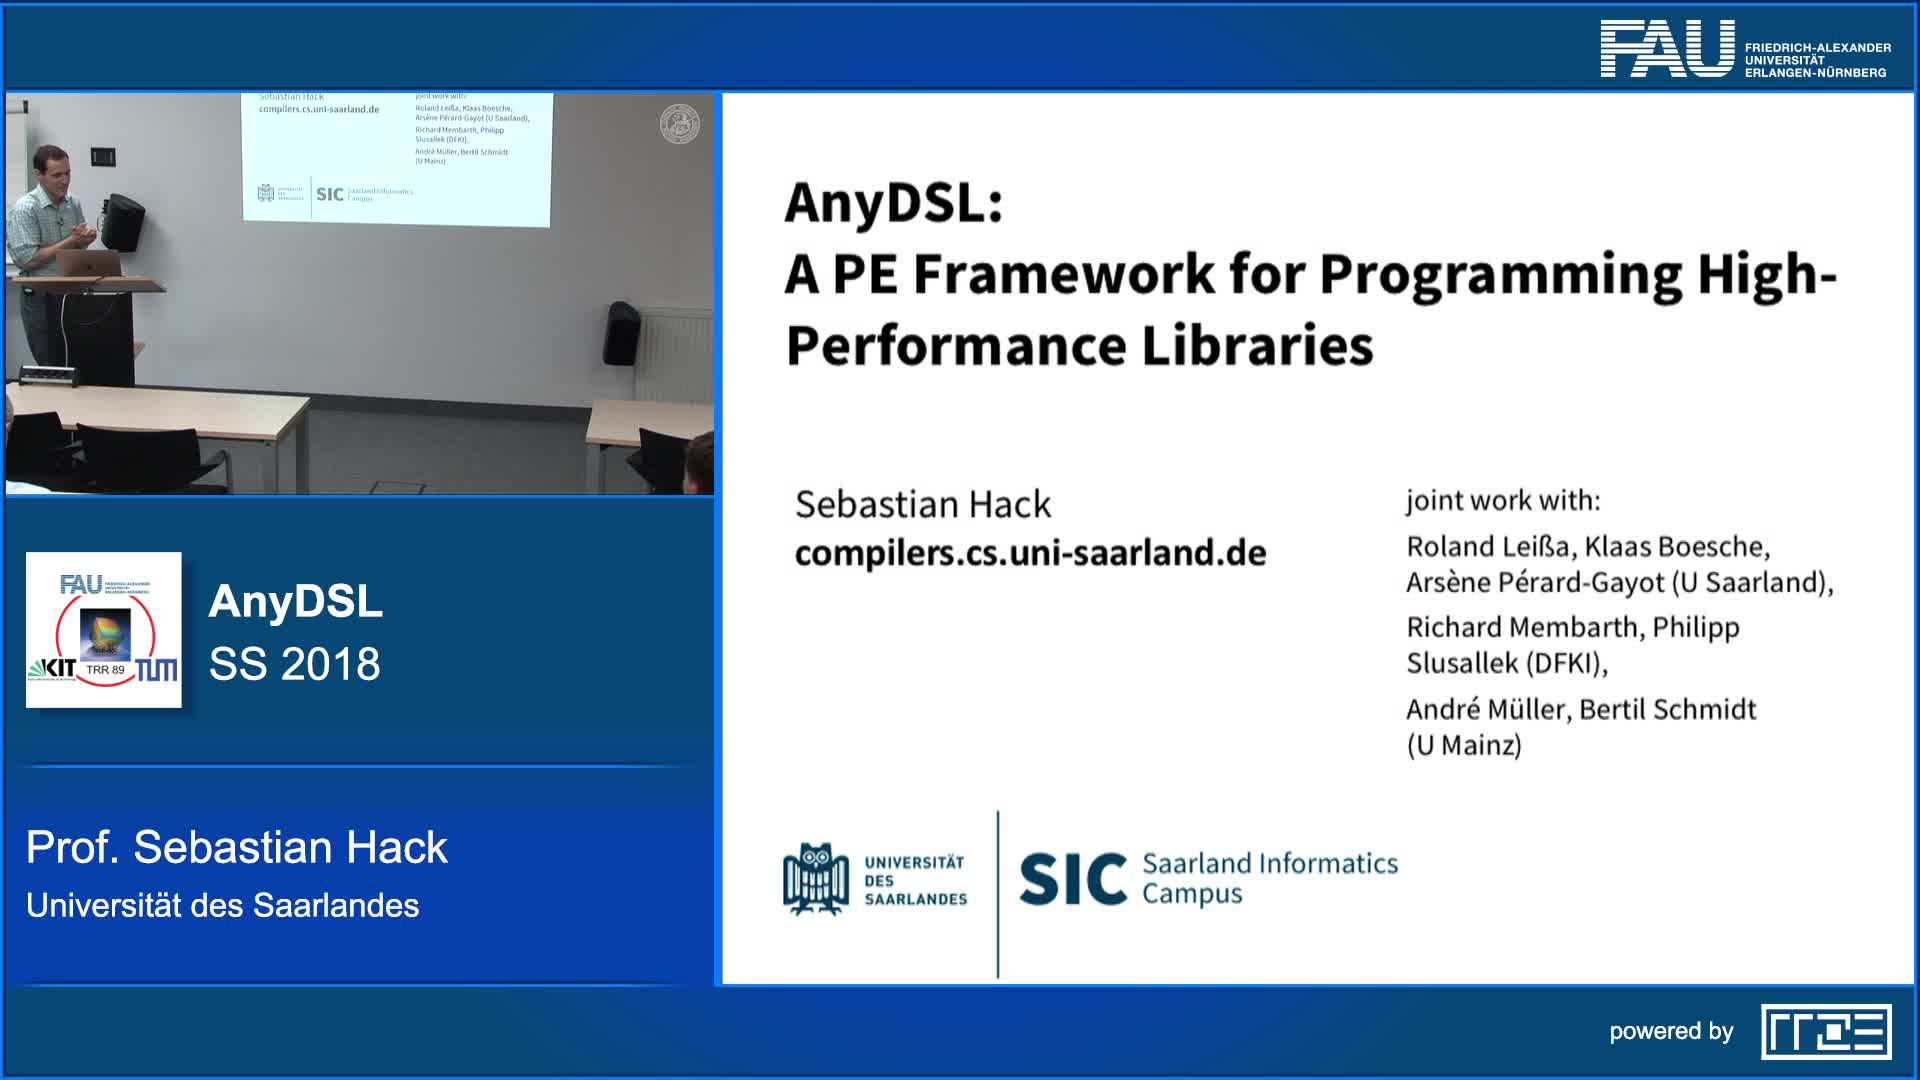 AnyDSL: A Partial Evaluation Framework for Programming High-Performance Libraries preview image